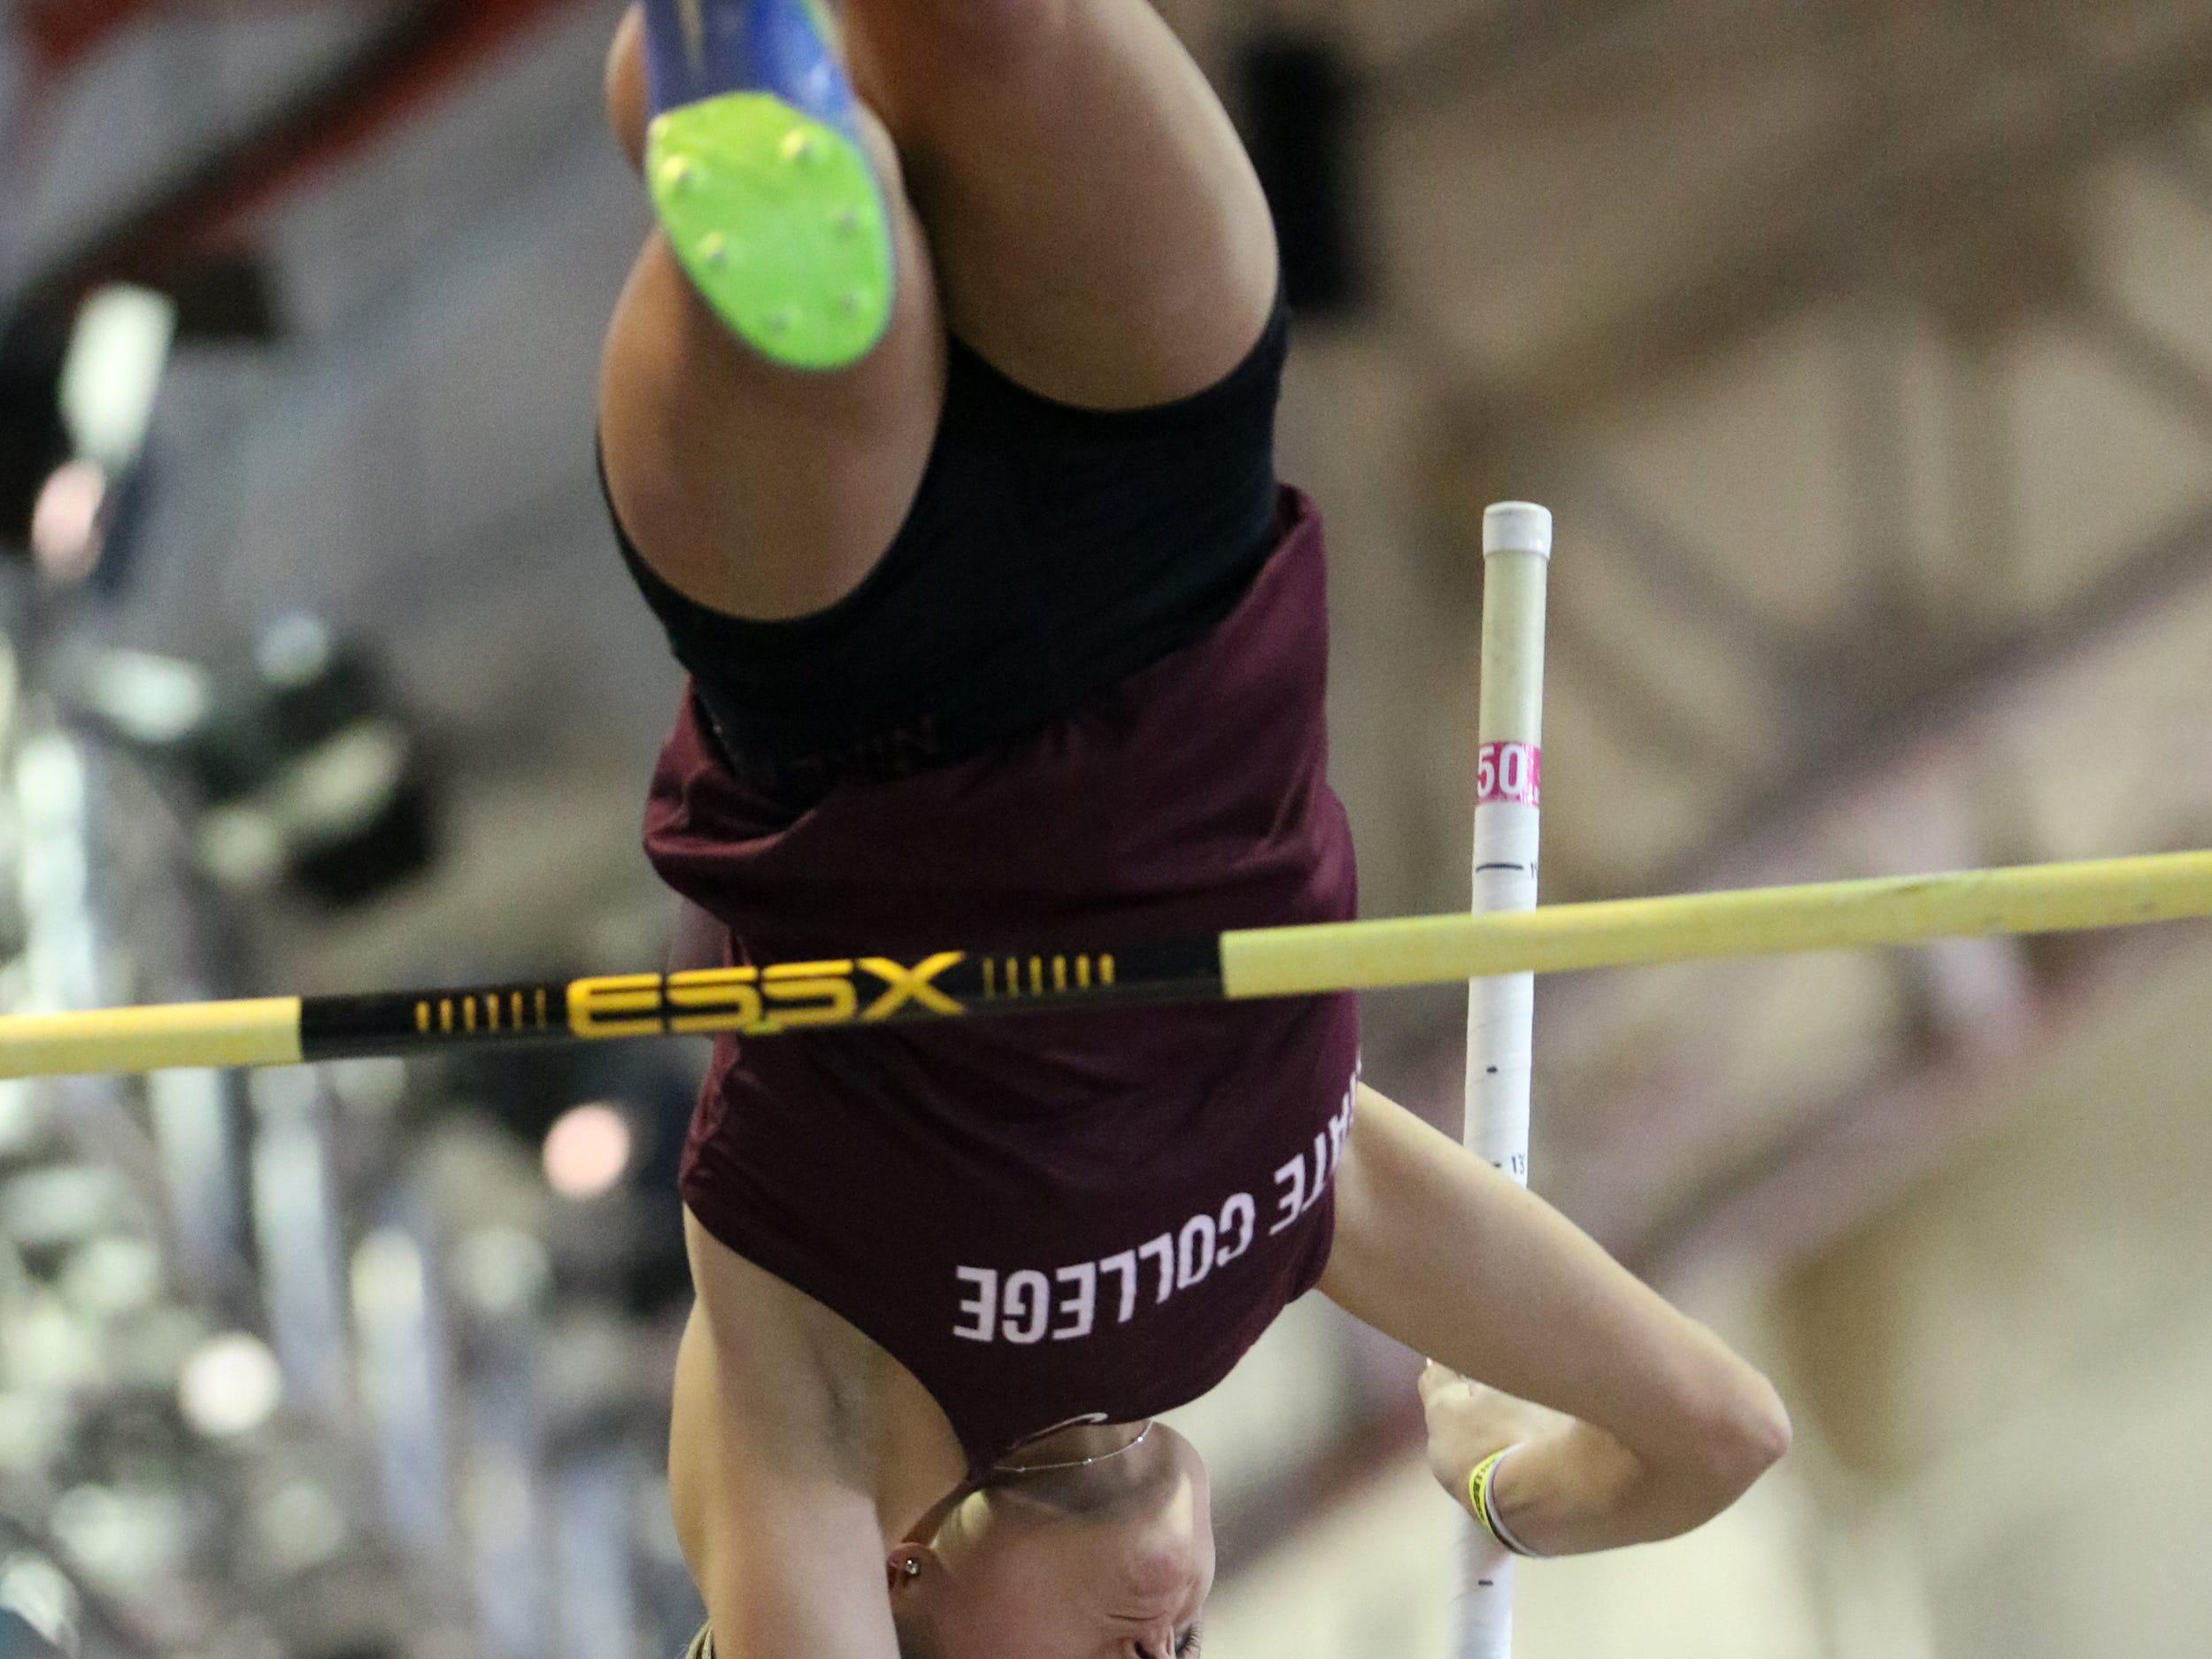 Lindsey Reed, of State College, Pennsylvania, competes in the pole vault. Saturday, February 9, 2019